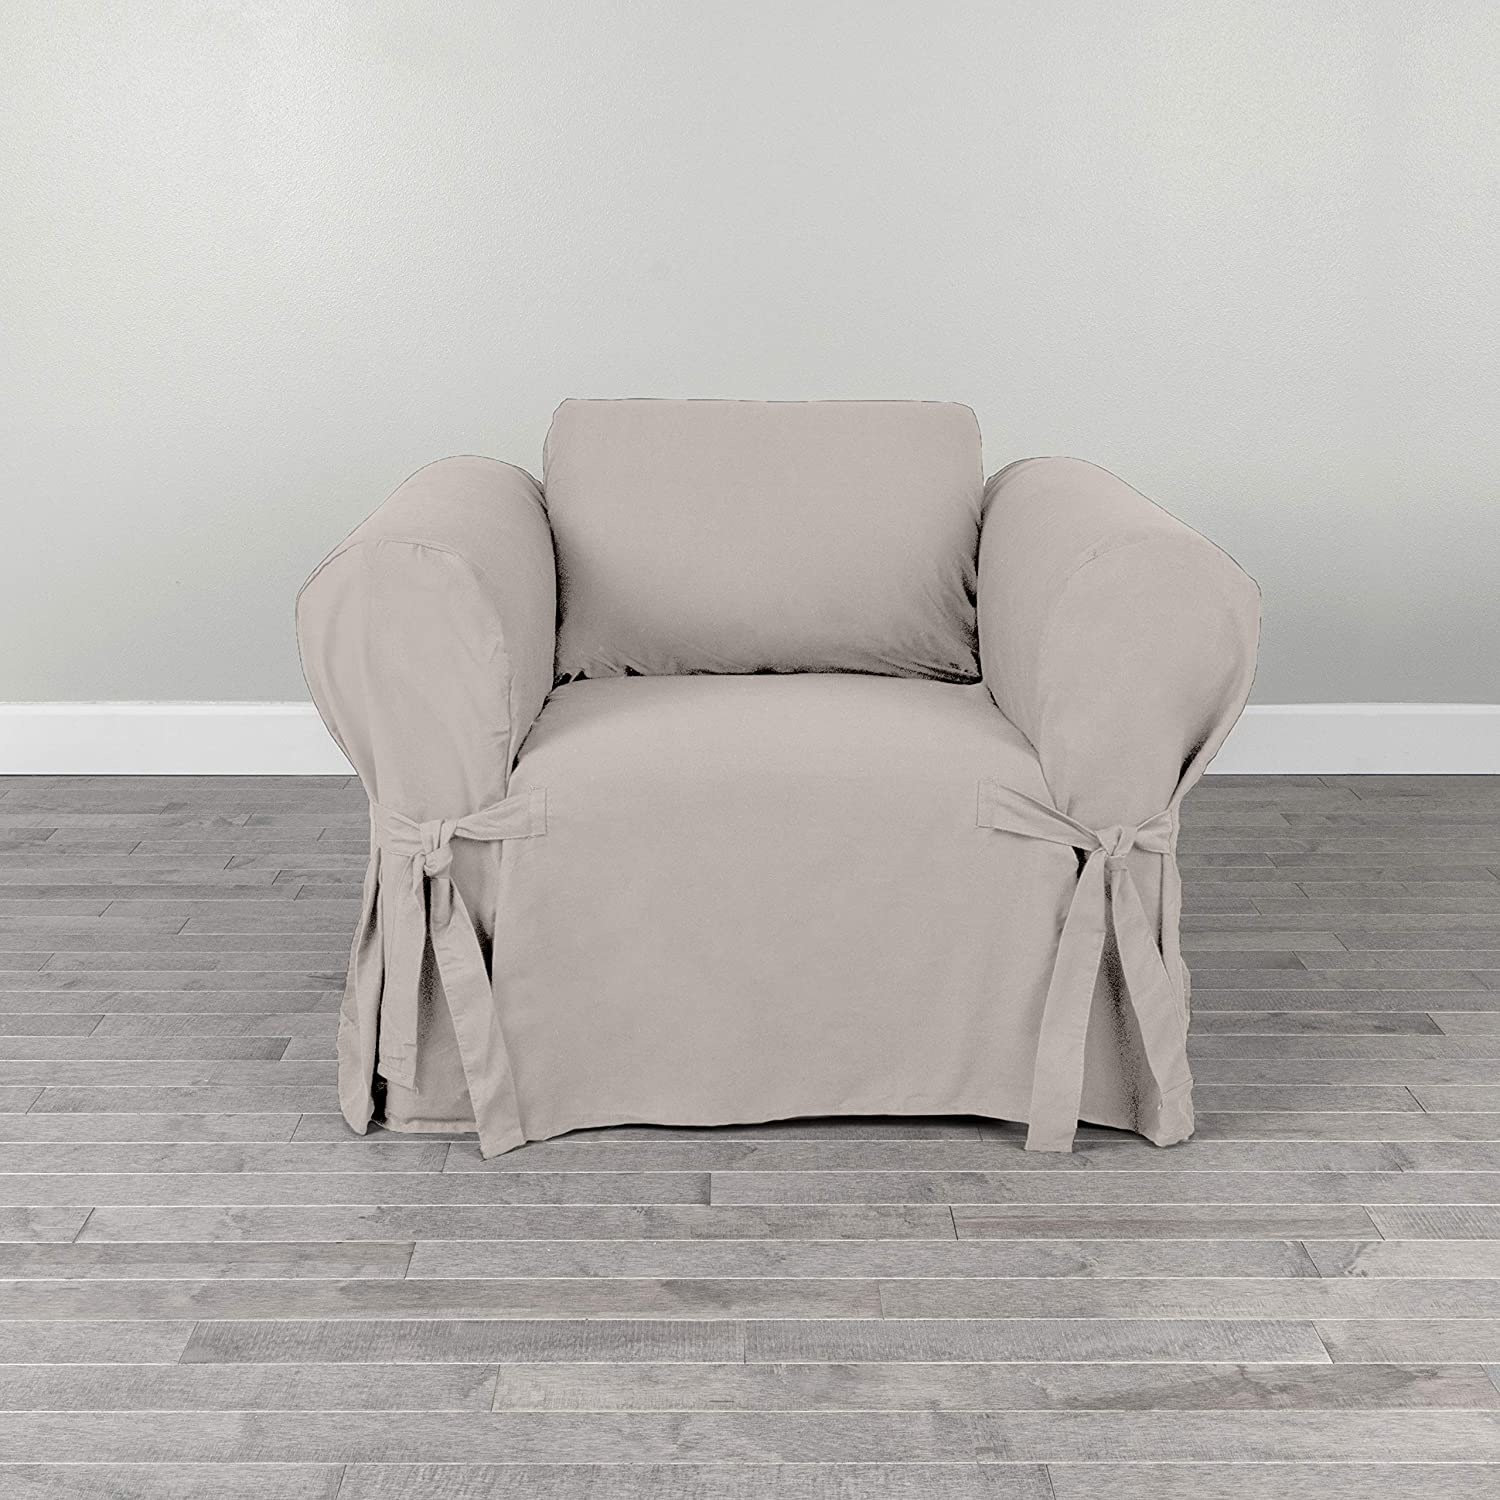 Magnificent Serta Relaxed Cotton Duck Slipcover Collection Fits Most Box Cushion Chairs Measuring Up To 24 White Ncnpc Chair Design For Home Ncnpcorg